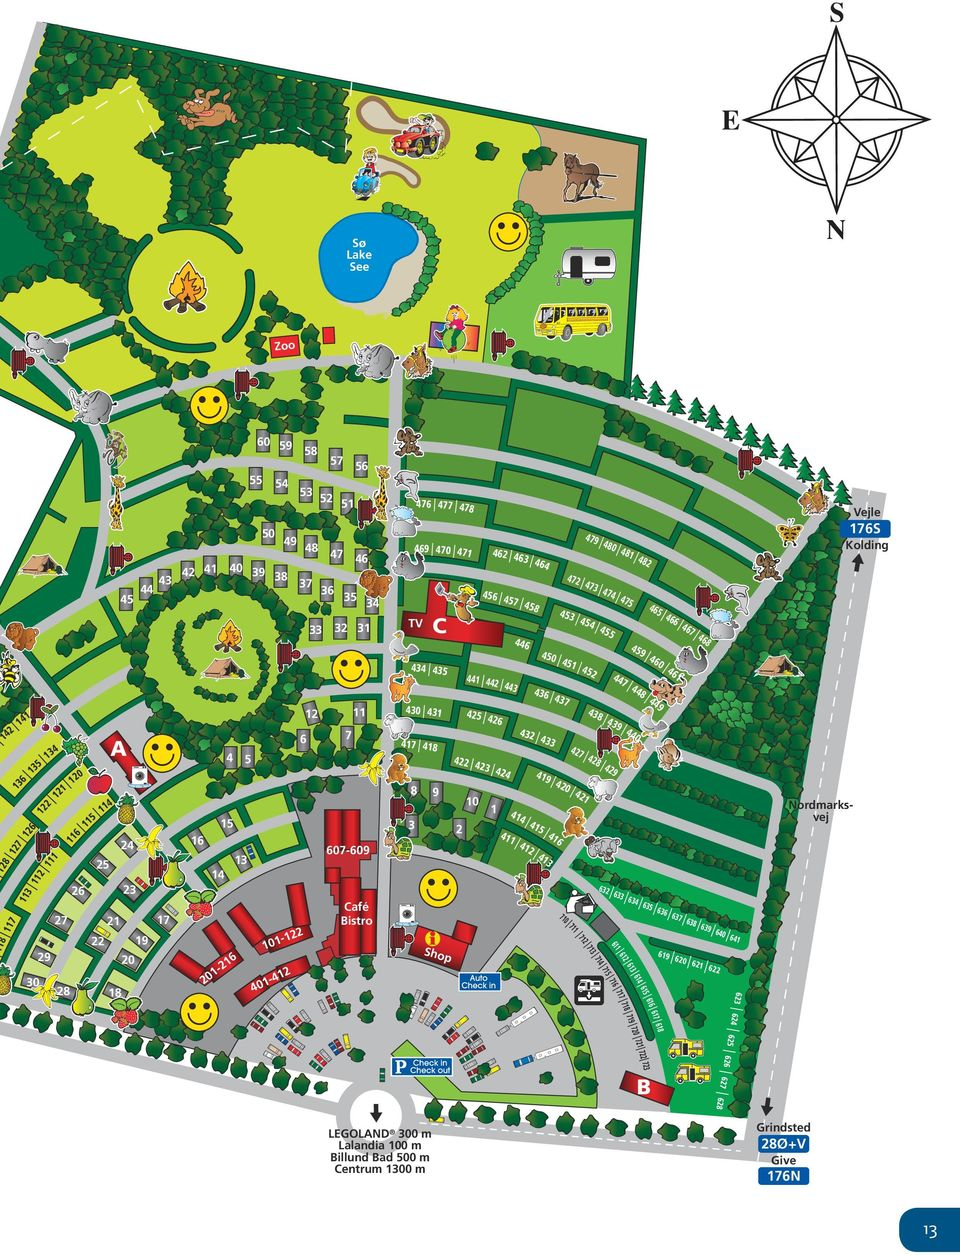 723 626 627 1 722 20 72 618 7 719 61 7 718 616 717 628 B LEGOLAND 300 m Lalandia 100 m Billund Bad 500 m Centrum 1300 m 620 639 615 716 614 715 613 714-4 401 619 612 12 611 Shop 713 18 6 21 1-20 633